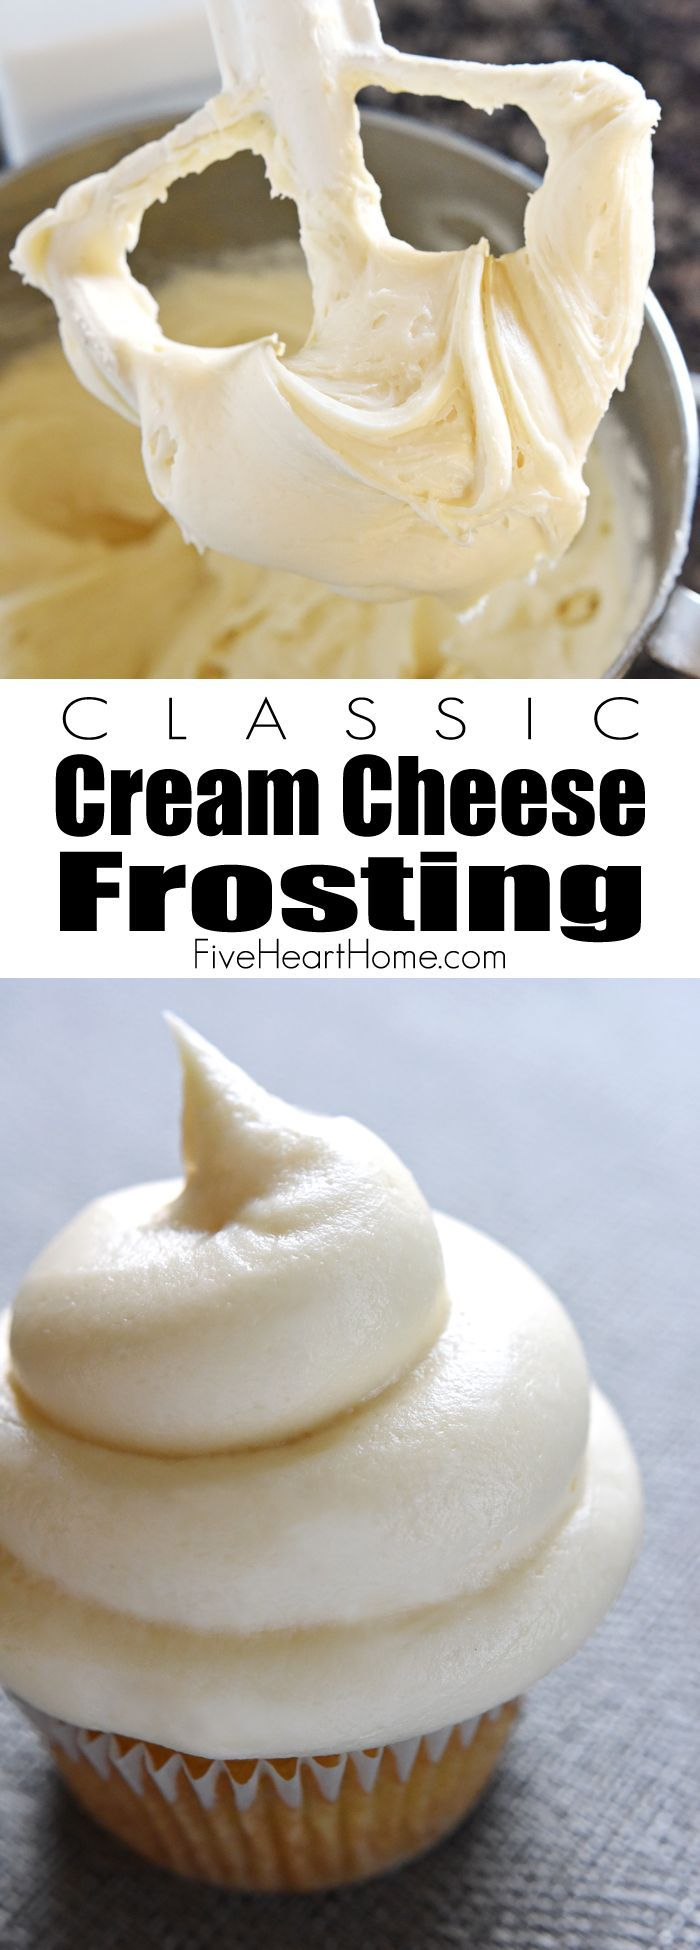 Classic Cream Cheese Frosting